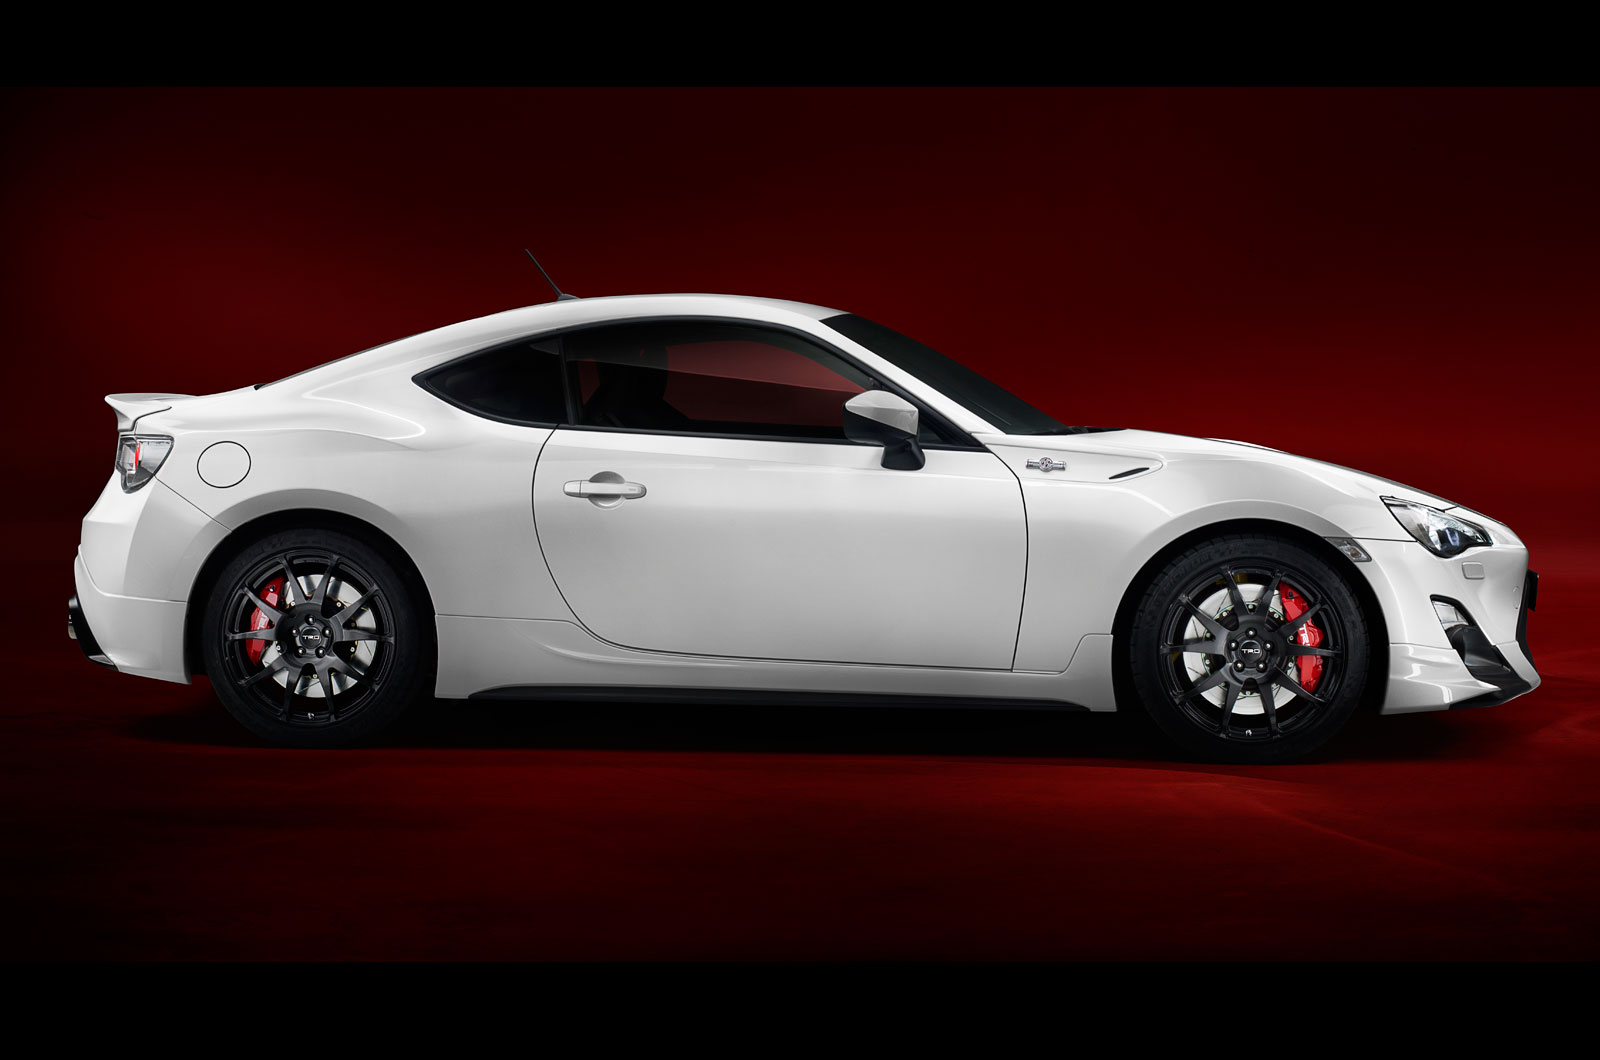 http://images.cdn.autocar.co.uk/sites/autocar.co.uk/files/toyota-gt86-trd-5.jpg